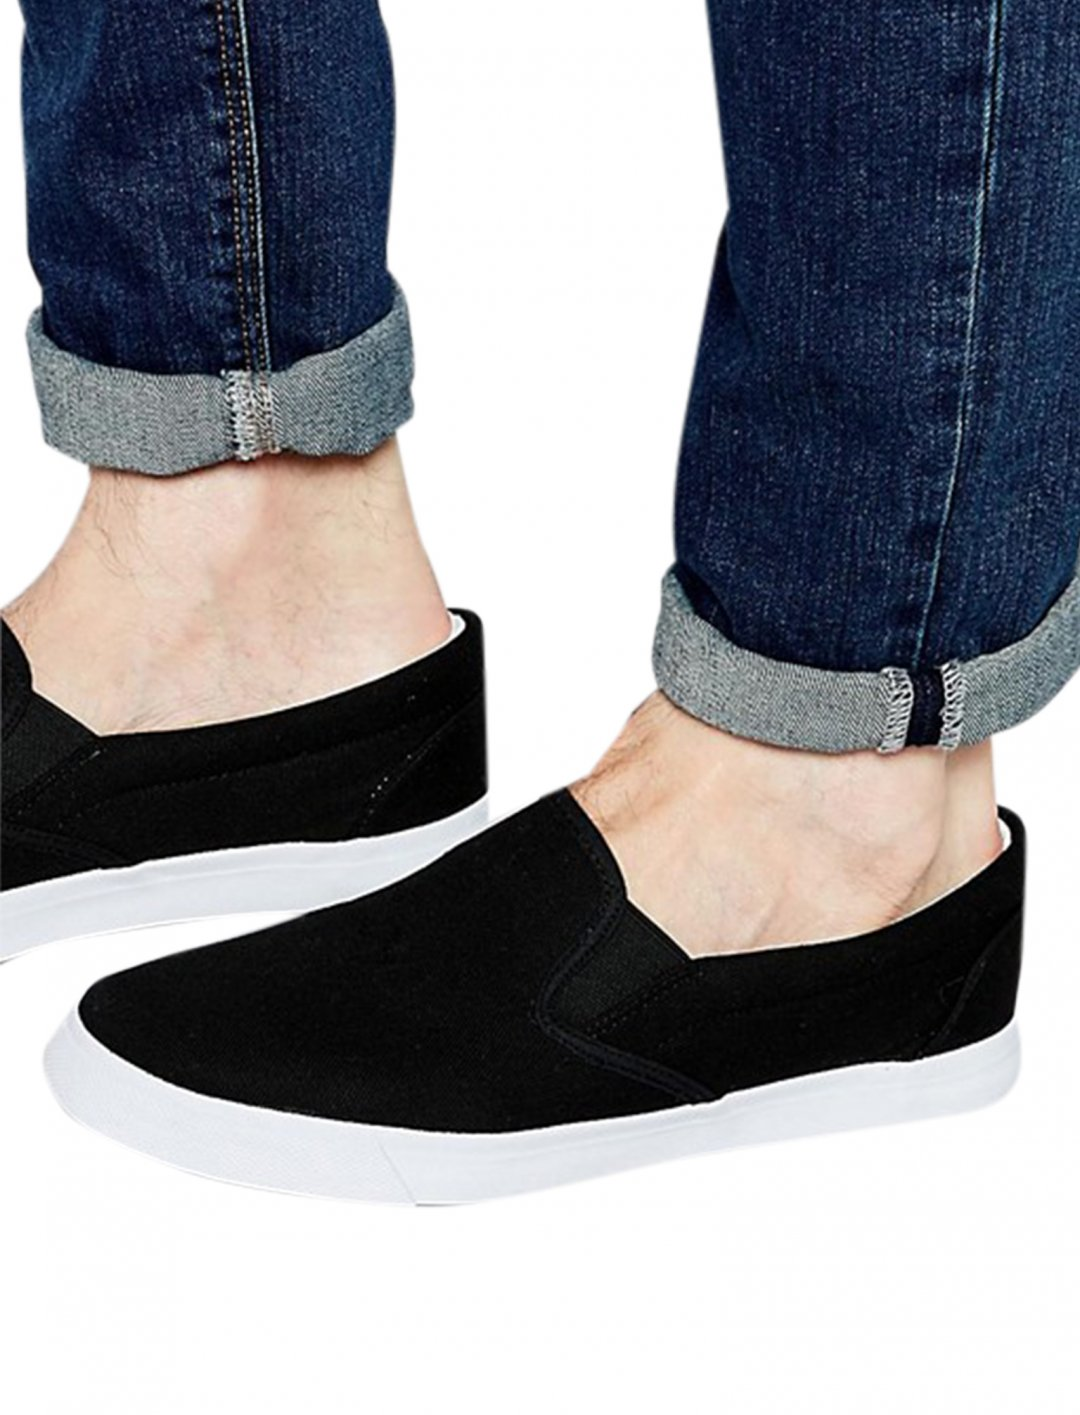 """Asos Slip On Plimsolls {""""id"""":12,""""product_section_id"""":1,""""name"""":""""Shoes"""",""""order"""":12} Asos"""